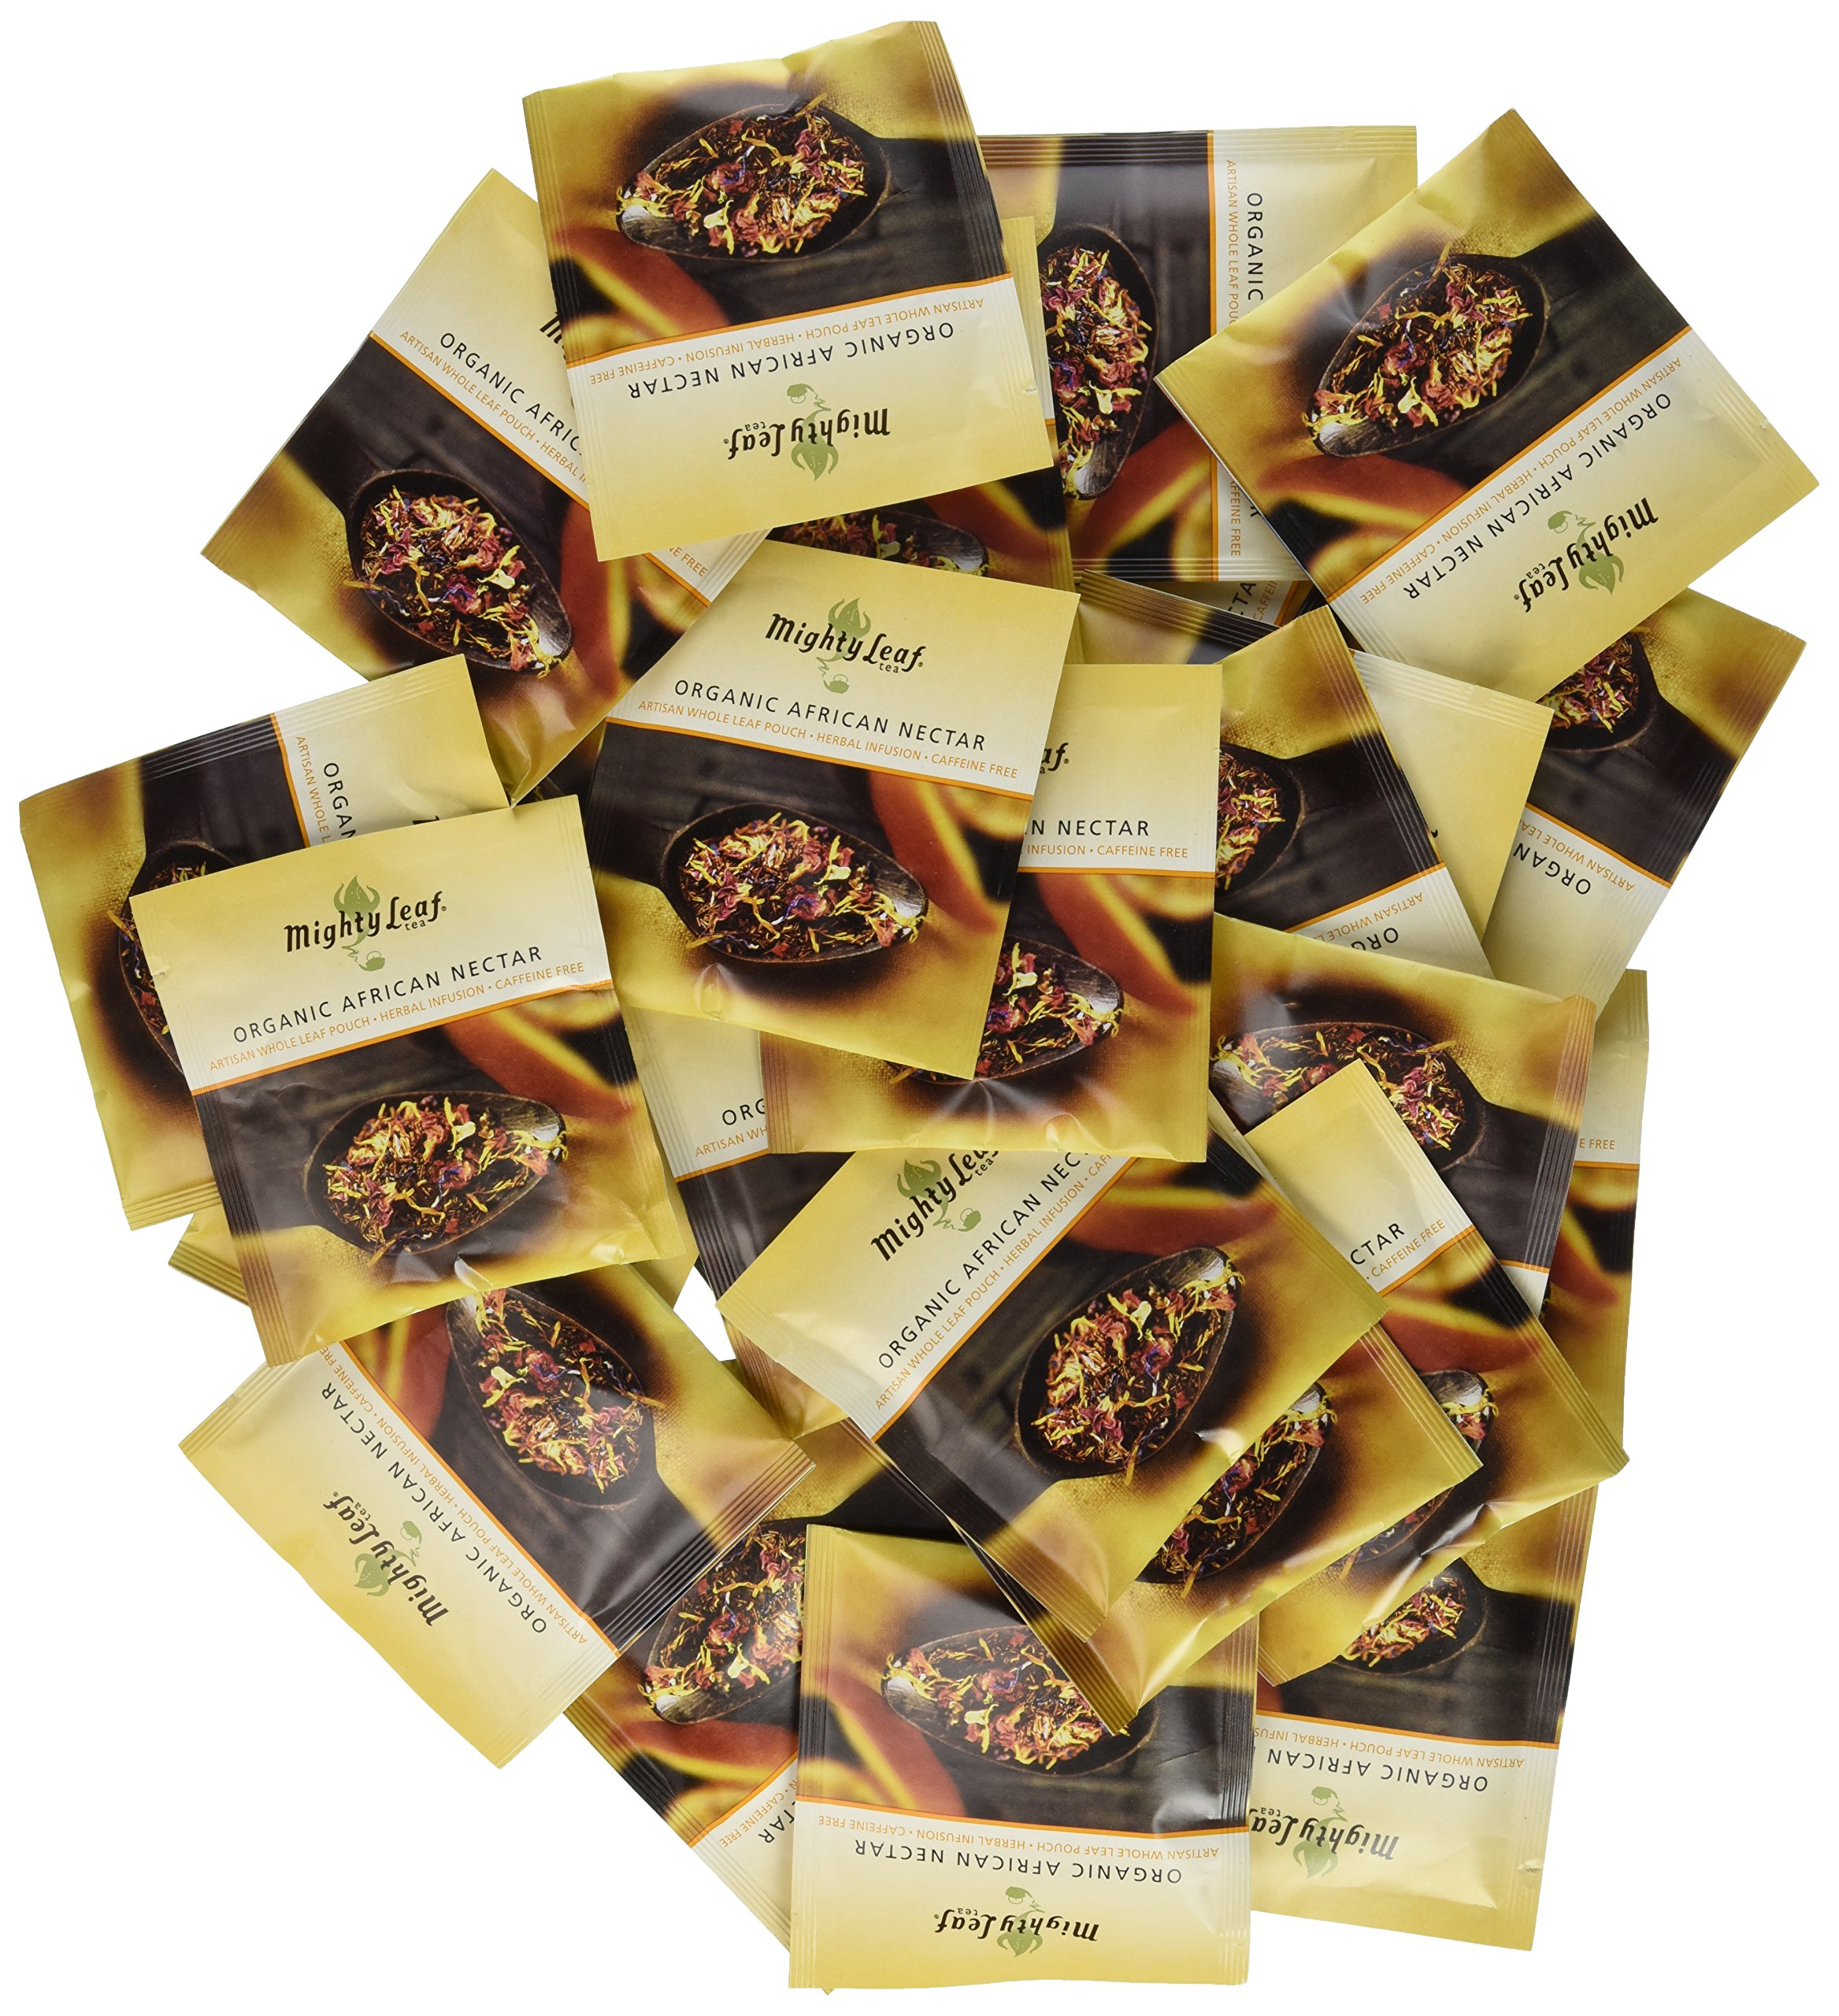 Mighty Leaf Organic African Nectar Tea, 100 Tea Pouches by Mighty Leaf Tea (Image #2)